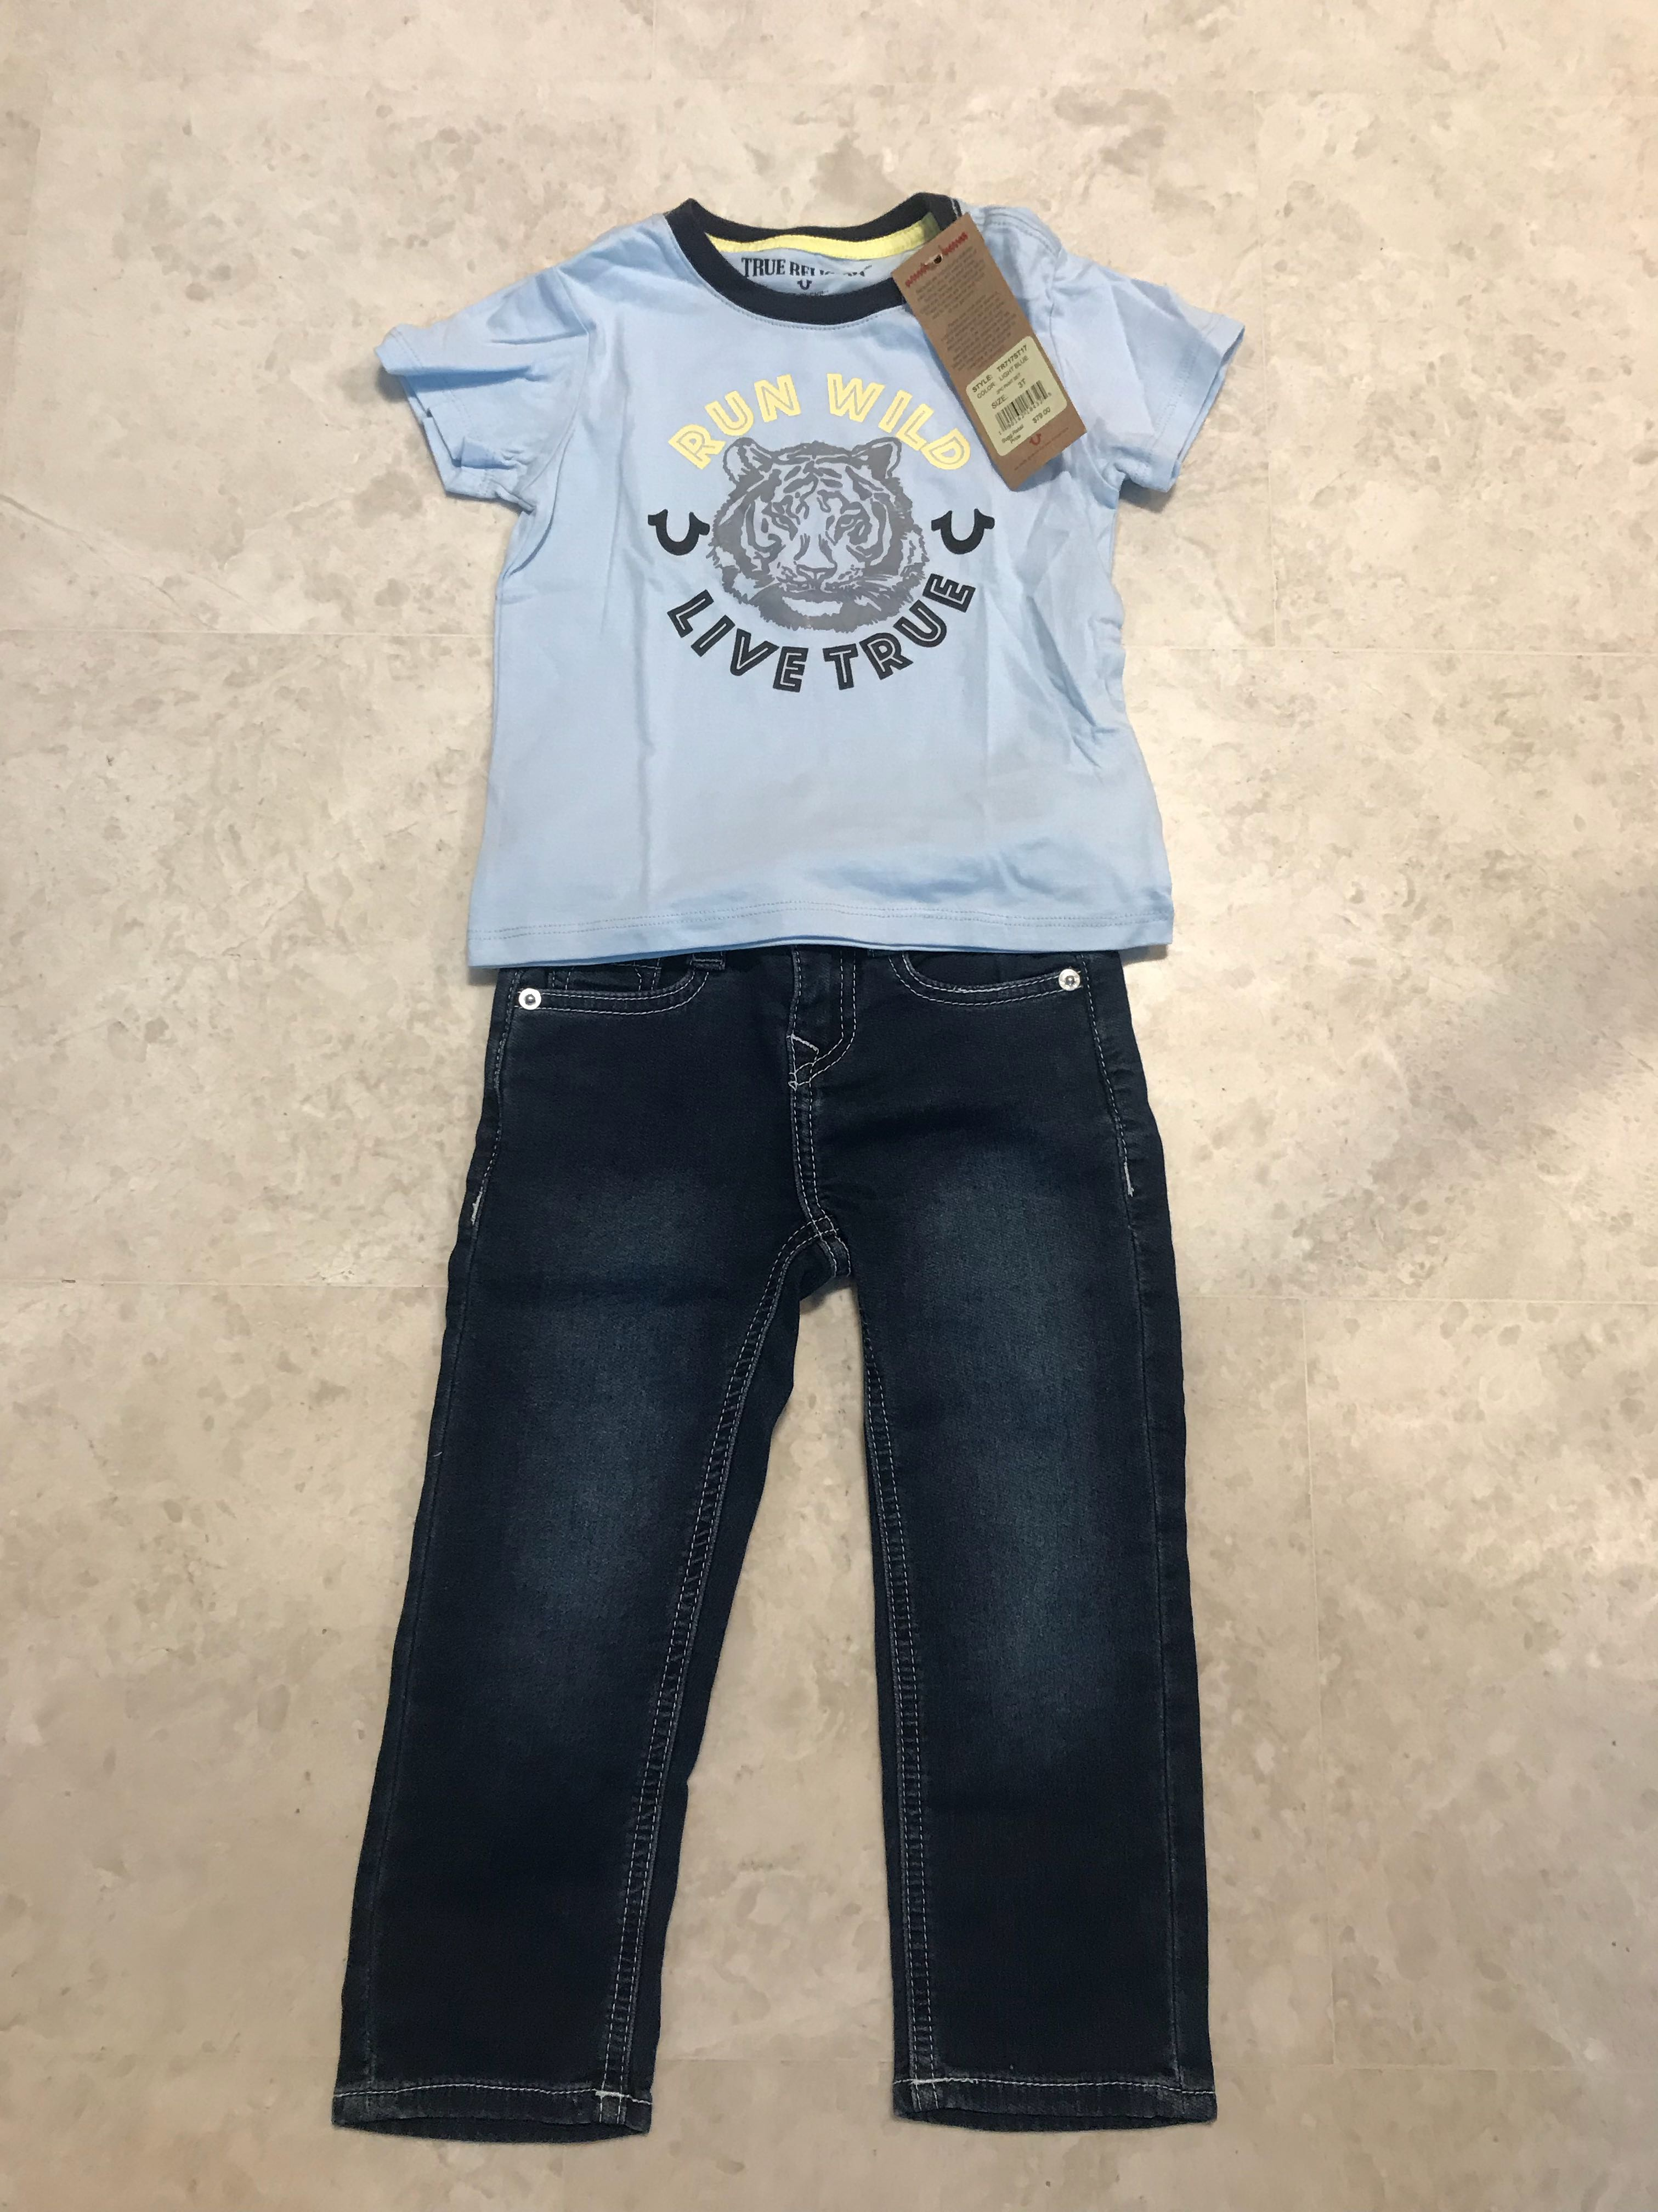 1a61d8d5 True Religion Boys 2 pc set Size 3, Babies & Kids, Boys' Apparel, 1 ...